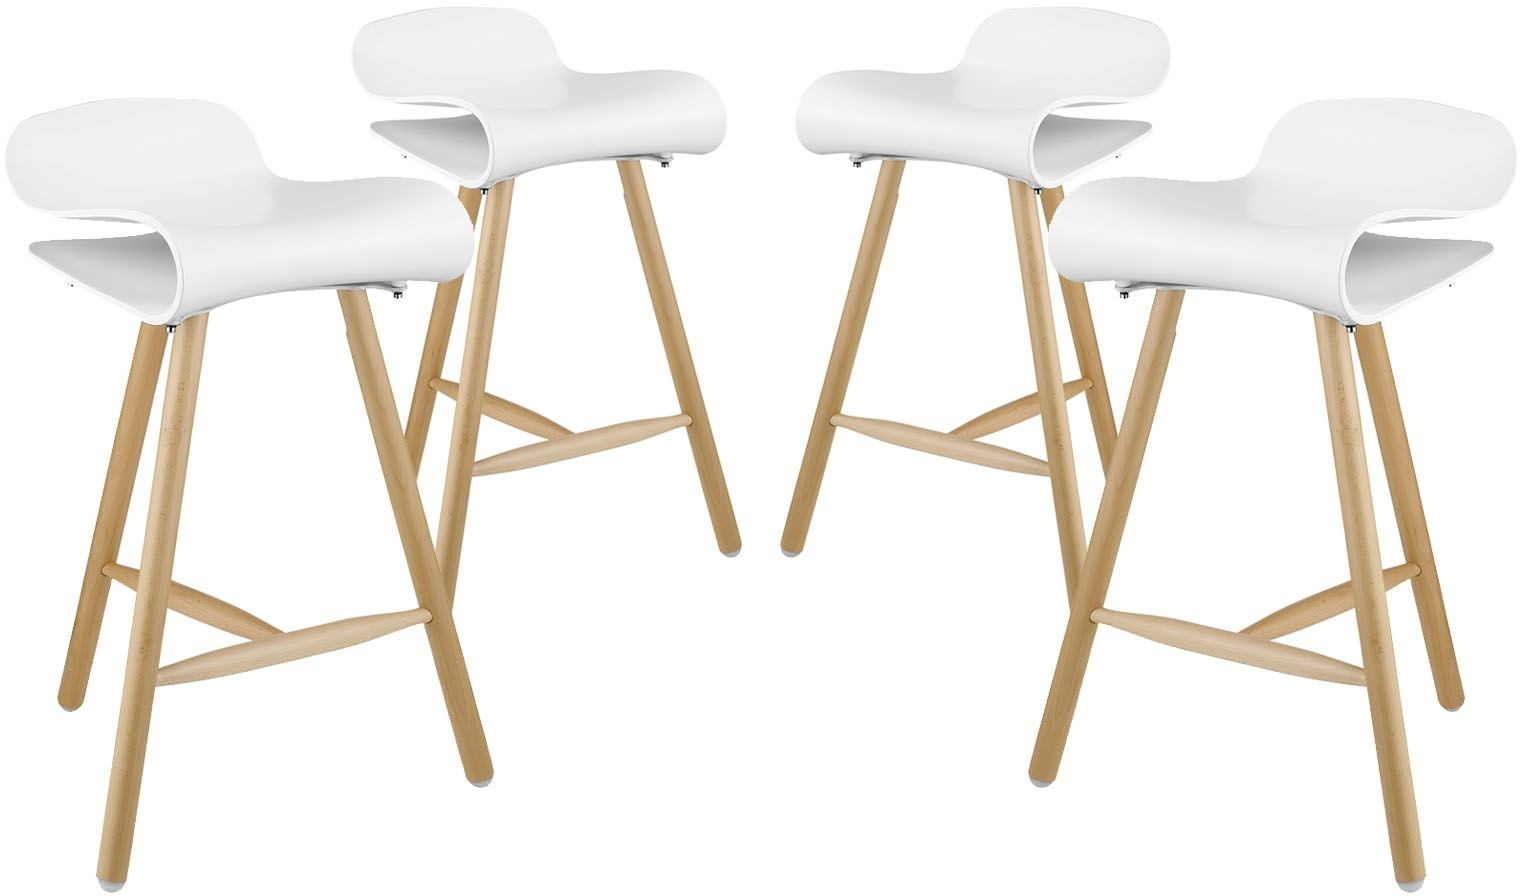 Clip White Bar Stool Set of 4 EEI 2406 WHI SET Renegade  : eei 2406 whi set from colemanfurniture.com size 1520 x 896 jpeg 95kB